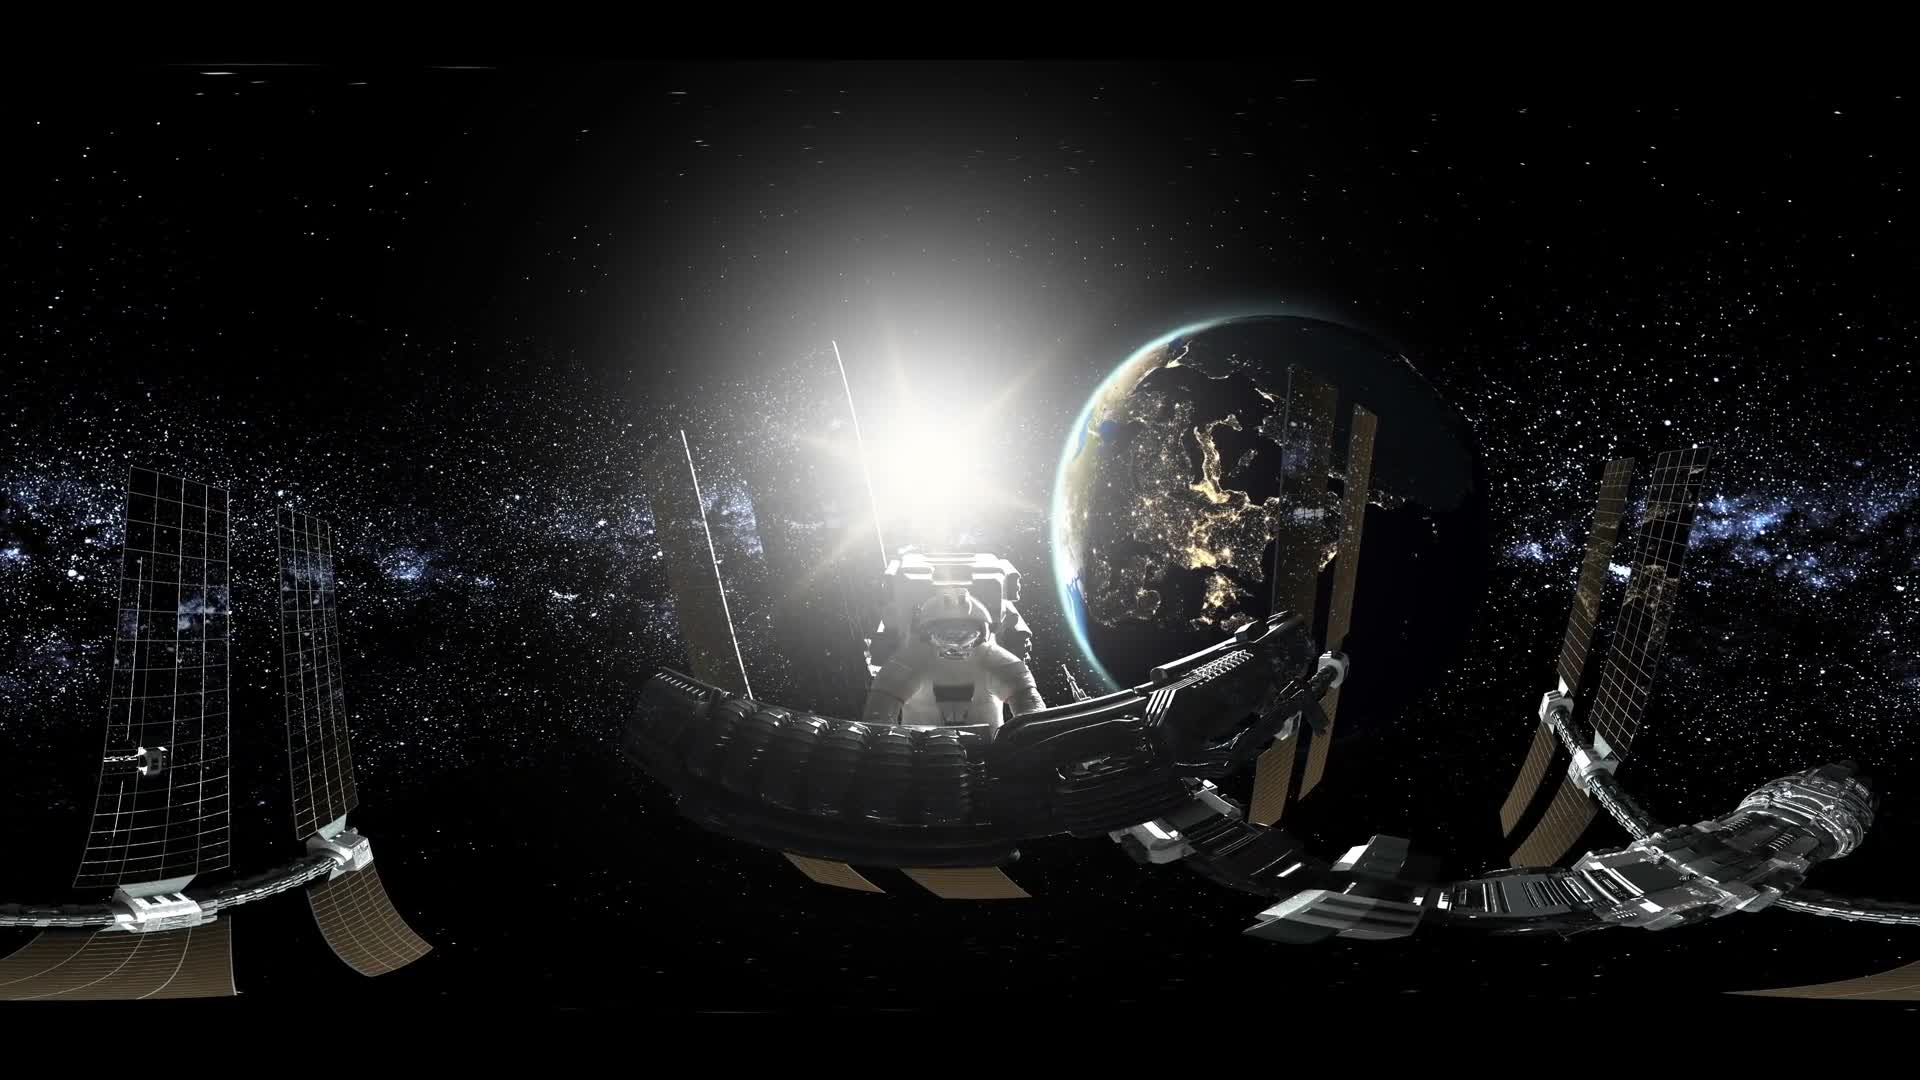 ISS invirtual reality 360 degree video. Astronaut working at International Space Station Orbiting Earth. Elements of this image furnished by NASA